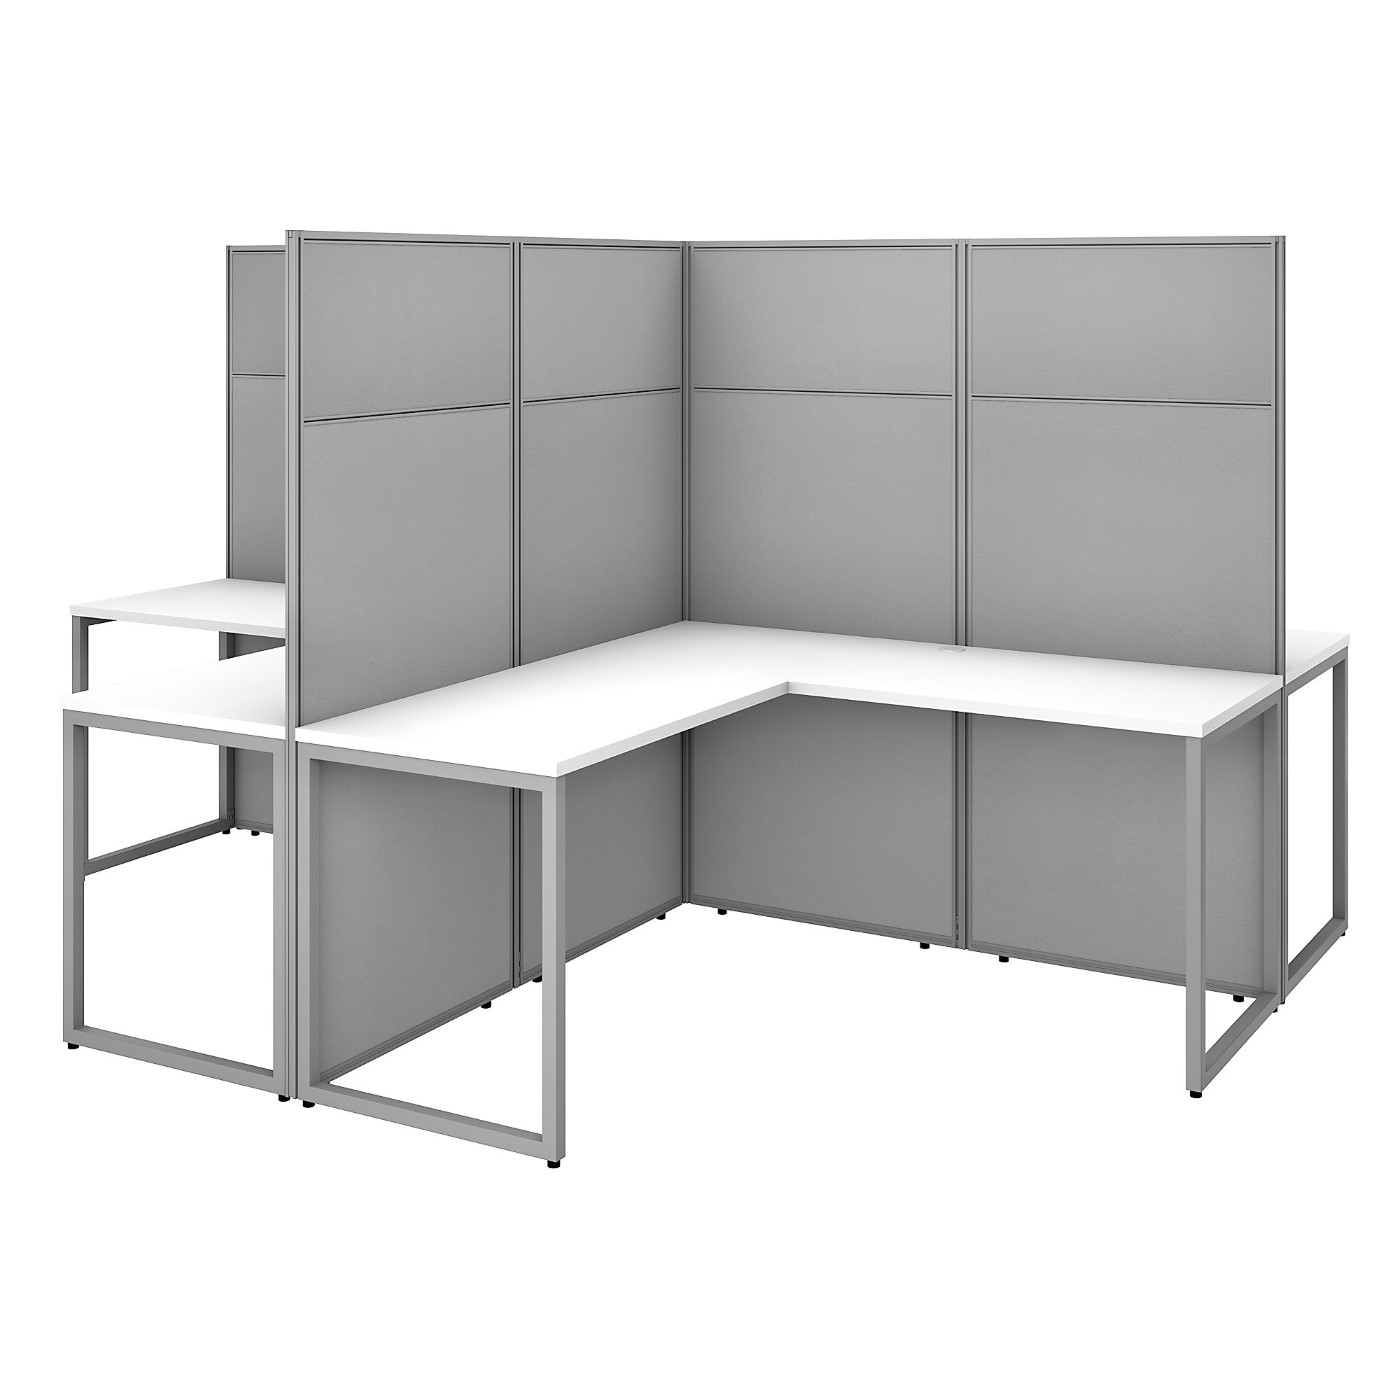 BUSH BUSINESS FURNITURE EASY OFFICE 60W 4 PERSON L SHAPED CUBICLE DESK WORKSTATION WITH 66H PANELS. FREE SHIPPING SALE DEDUCT 10% MORE ENTER '10percent' IN COUPON CODE BOX WHILE CHECKING OUT. ENDS 5-31-20.